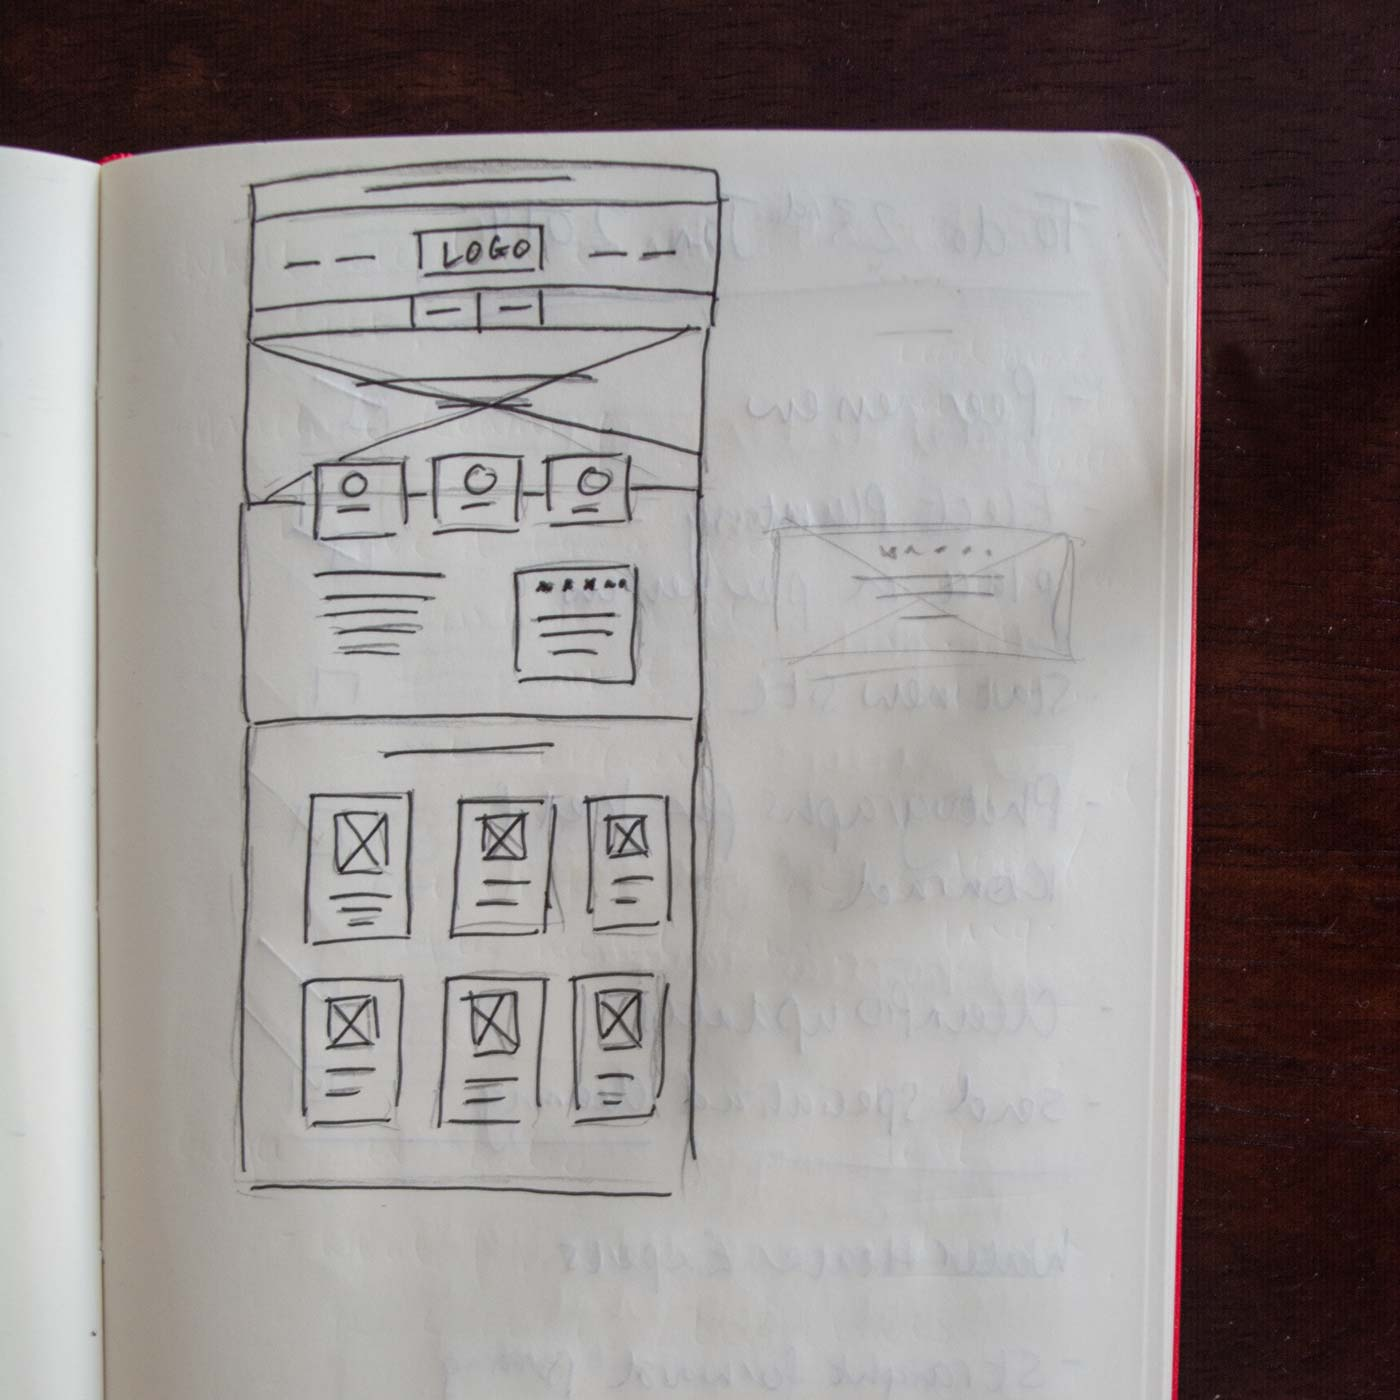 A layout sketch from my notebook